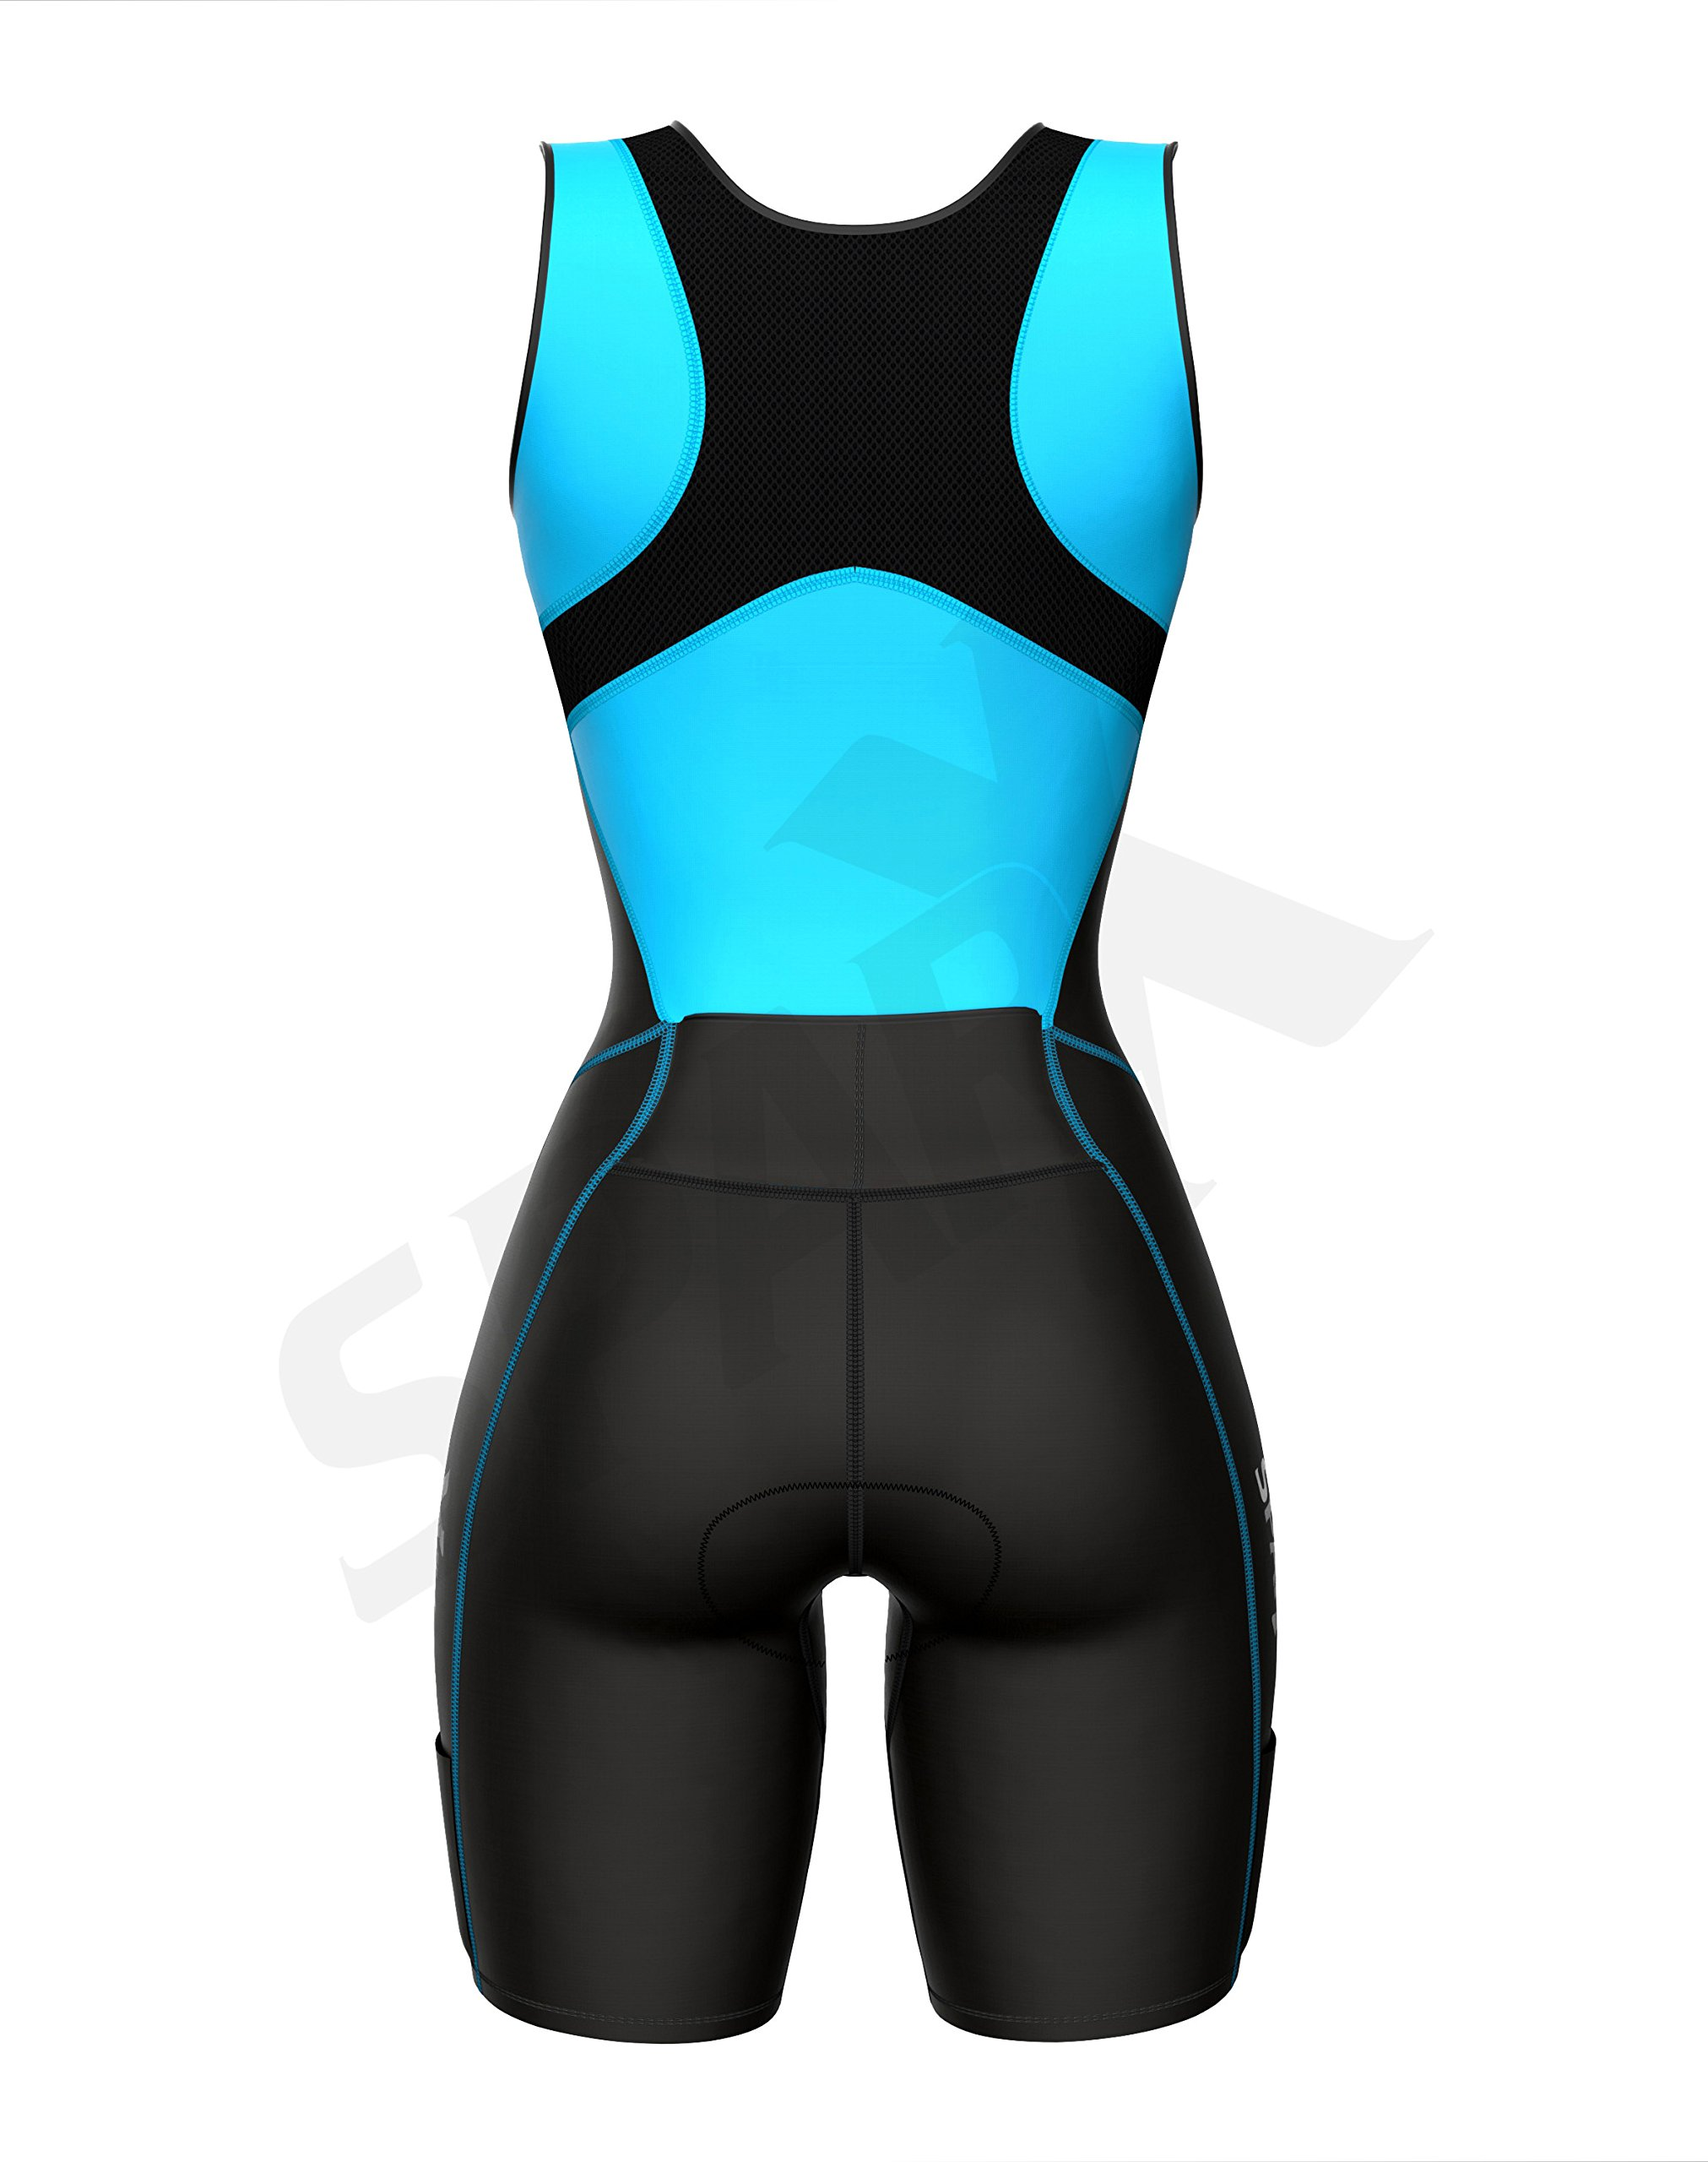 Sparx Women Triathlon Suit Tri Short Racing Cycling Swim Run (Small, Aqua) by Sparx Sports (Image #5)